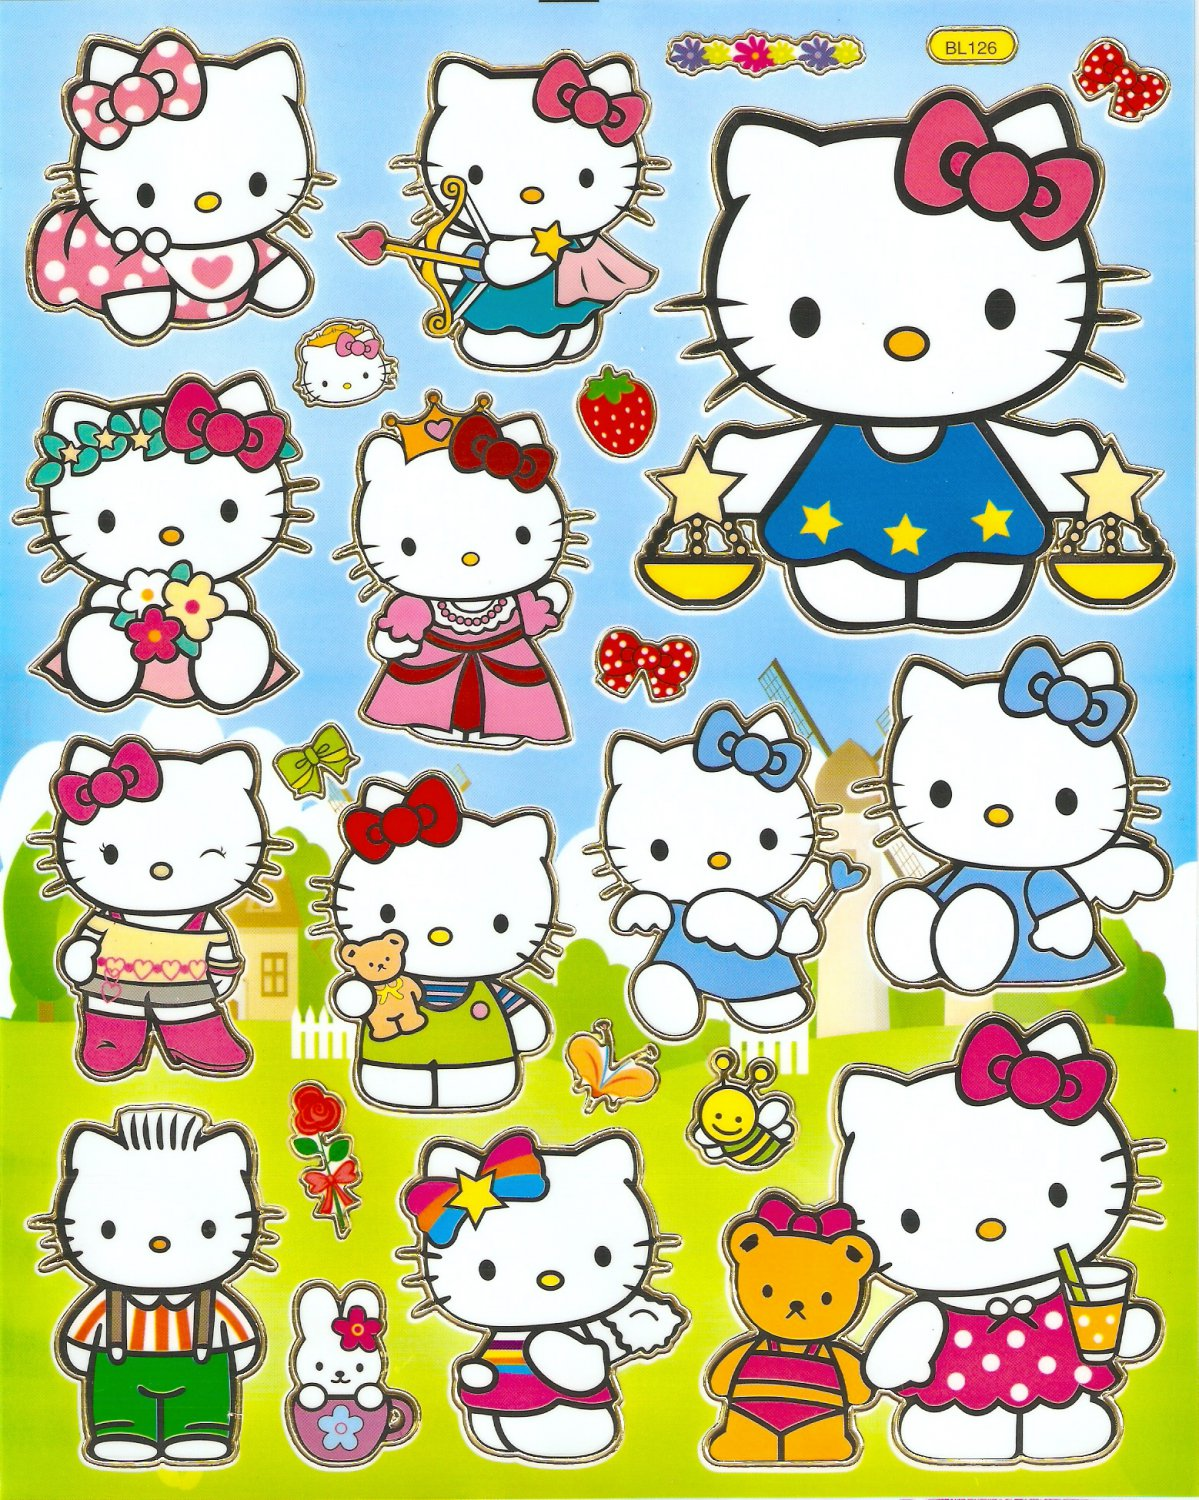 10 Big sheets Hello Kitty Sticker Buy 2 lots Bonus 1  #HK BL126